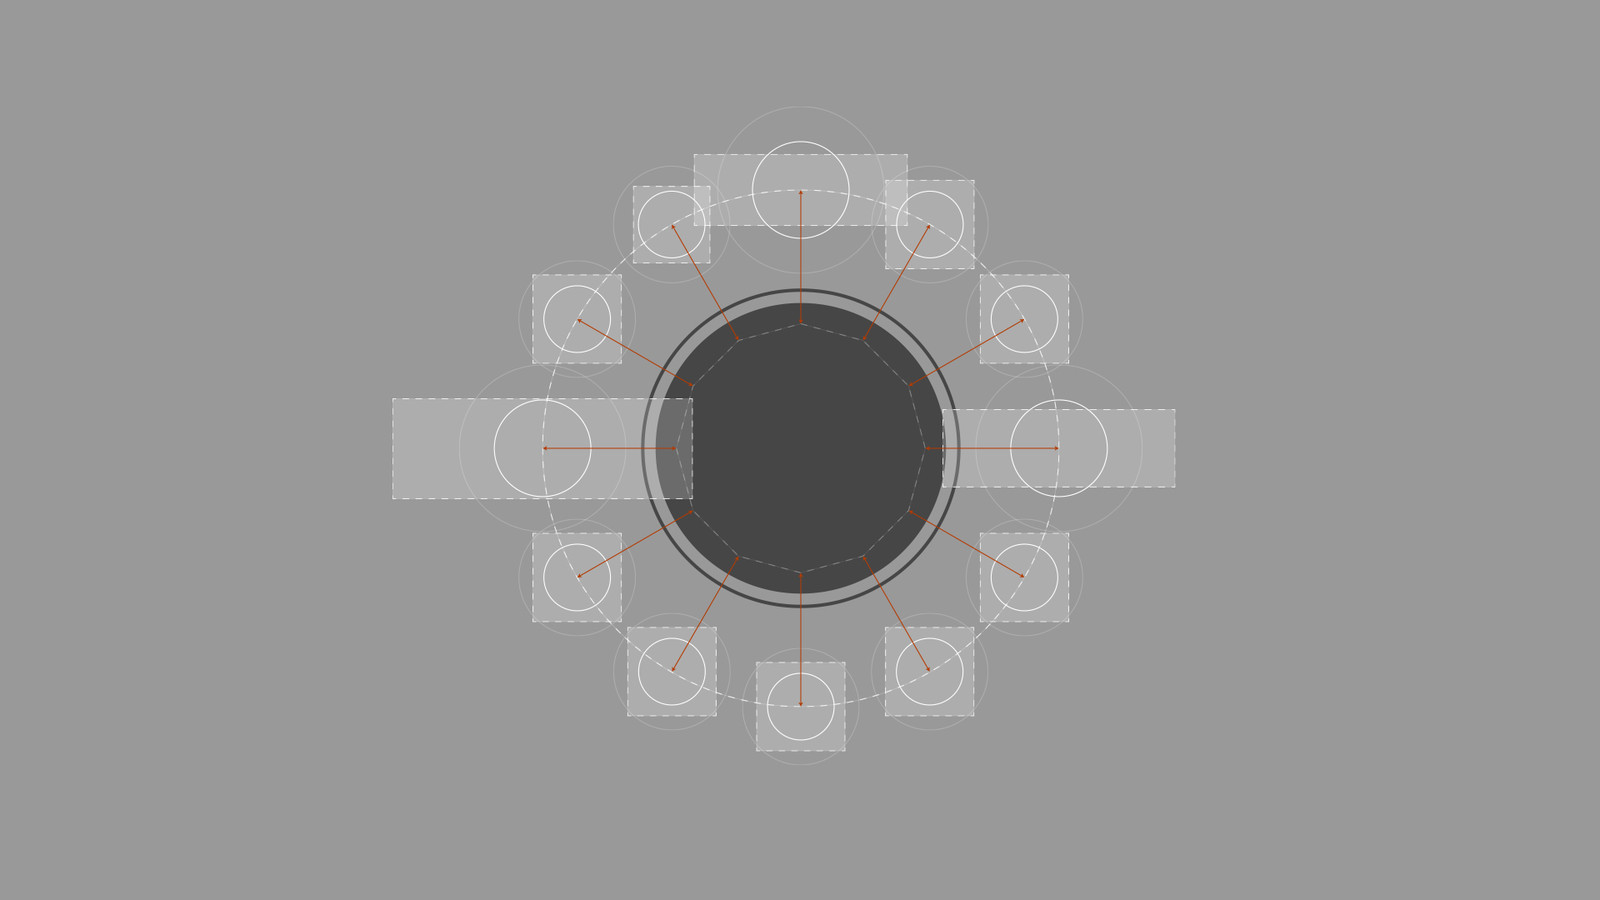 As the implementation of the Radial Wheel was very precise, the initial layout was designed with this in mind. This included the dimensions of the icons, highlights, etc., so that it could be iterated and translated into the engine much faster.